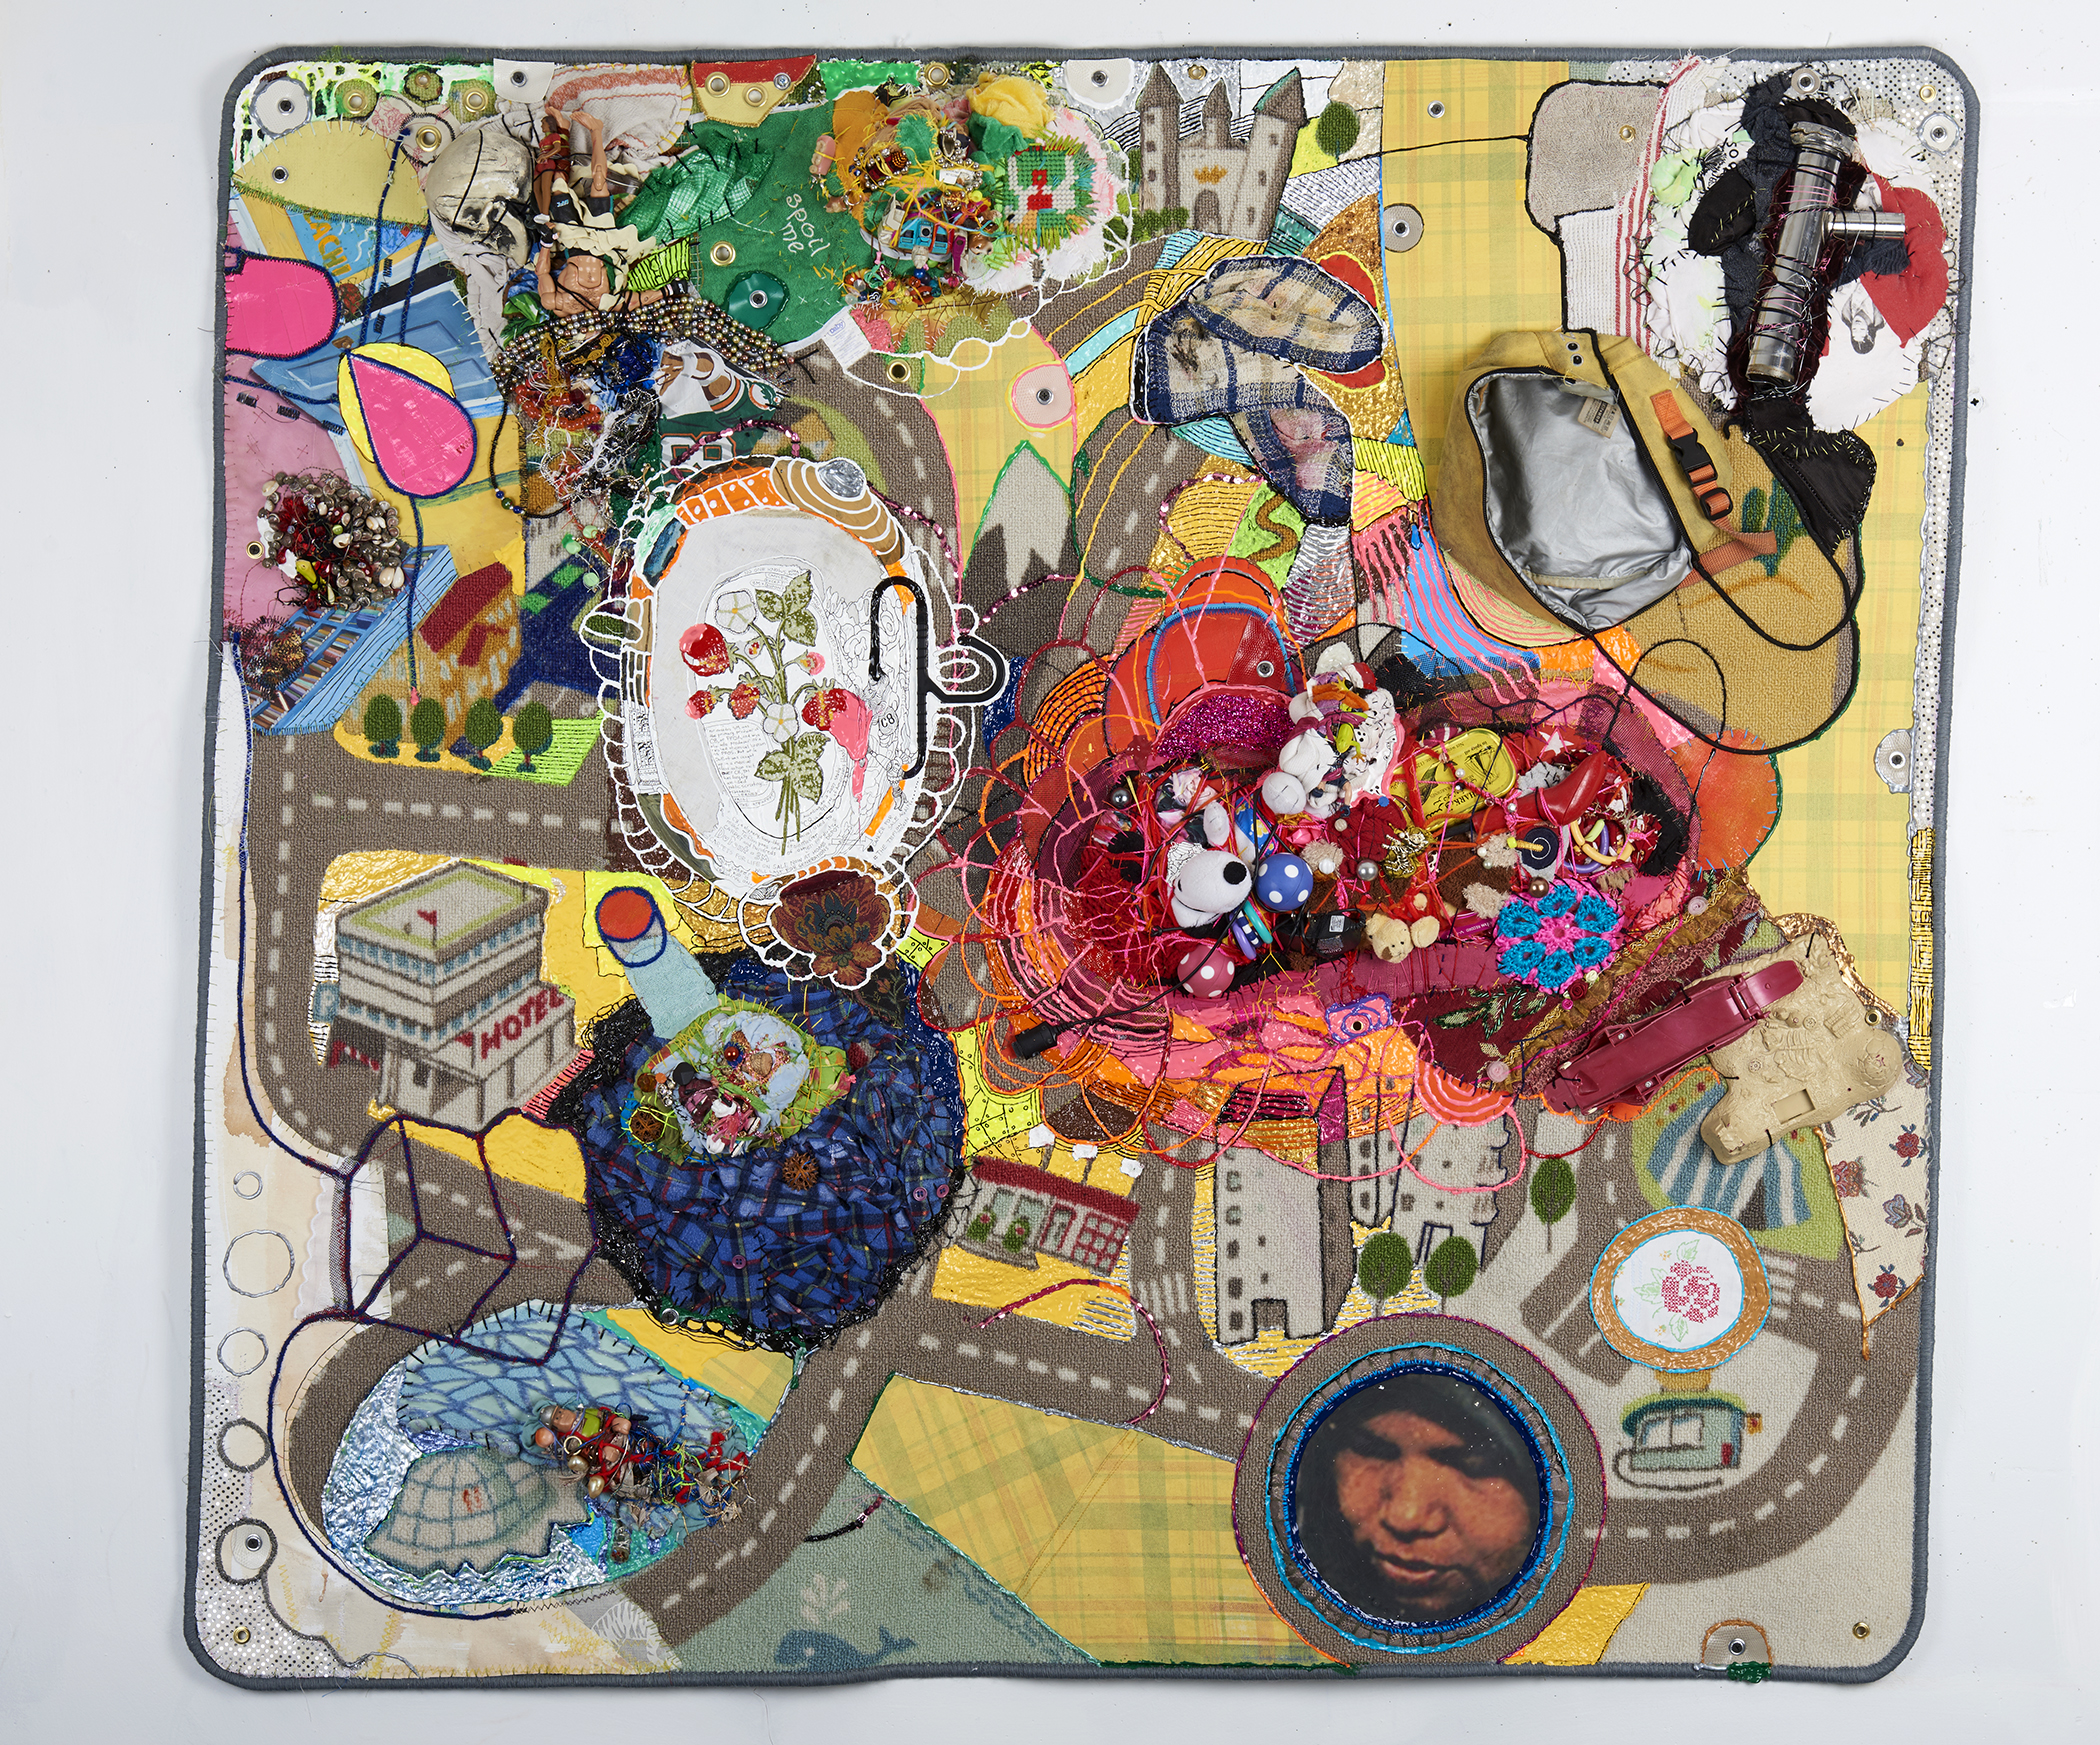 """Crawling on Cancer :      The Teflon Toxin by Sharon Lerner      2016,52""""x 55"""" x 6"""", trim, photo, resin, wood, thread, found objects, fabric paint, fabric, duct tape & grommets on my son's old Ikea carpet. Note: """"The Teflon Toxin"""" (known as C8) is found on most carpets and it is a carcinogen."""